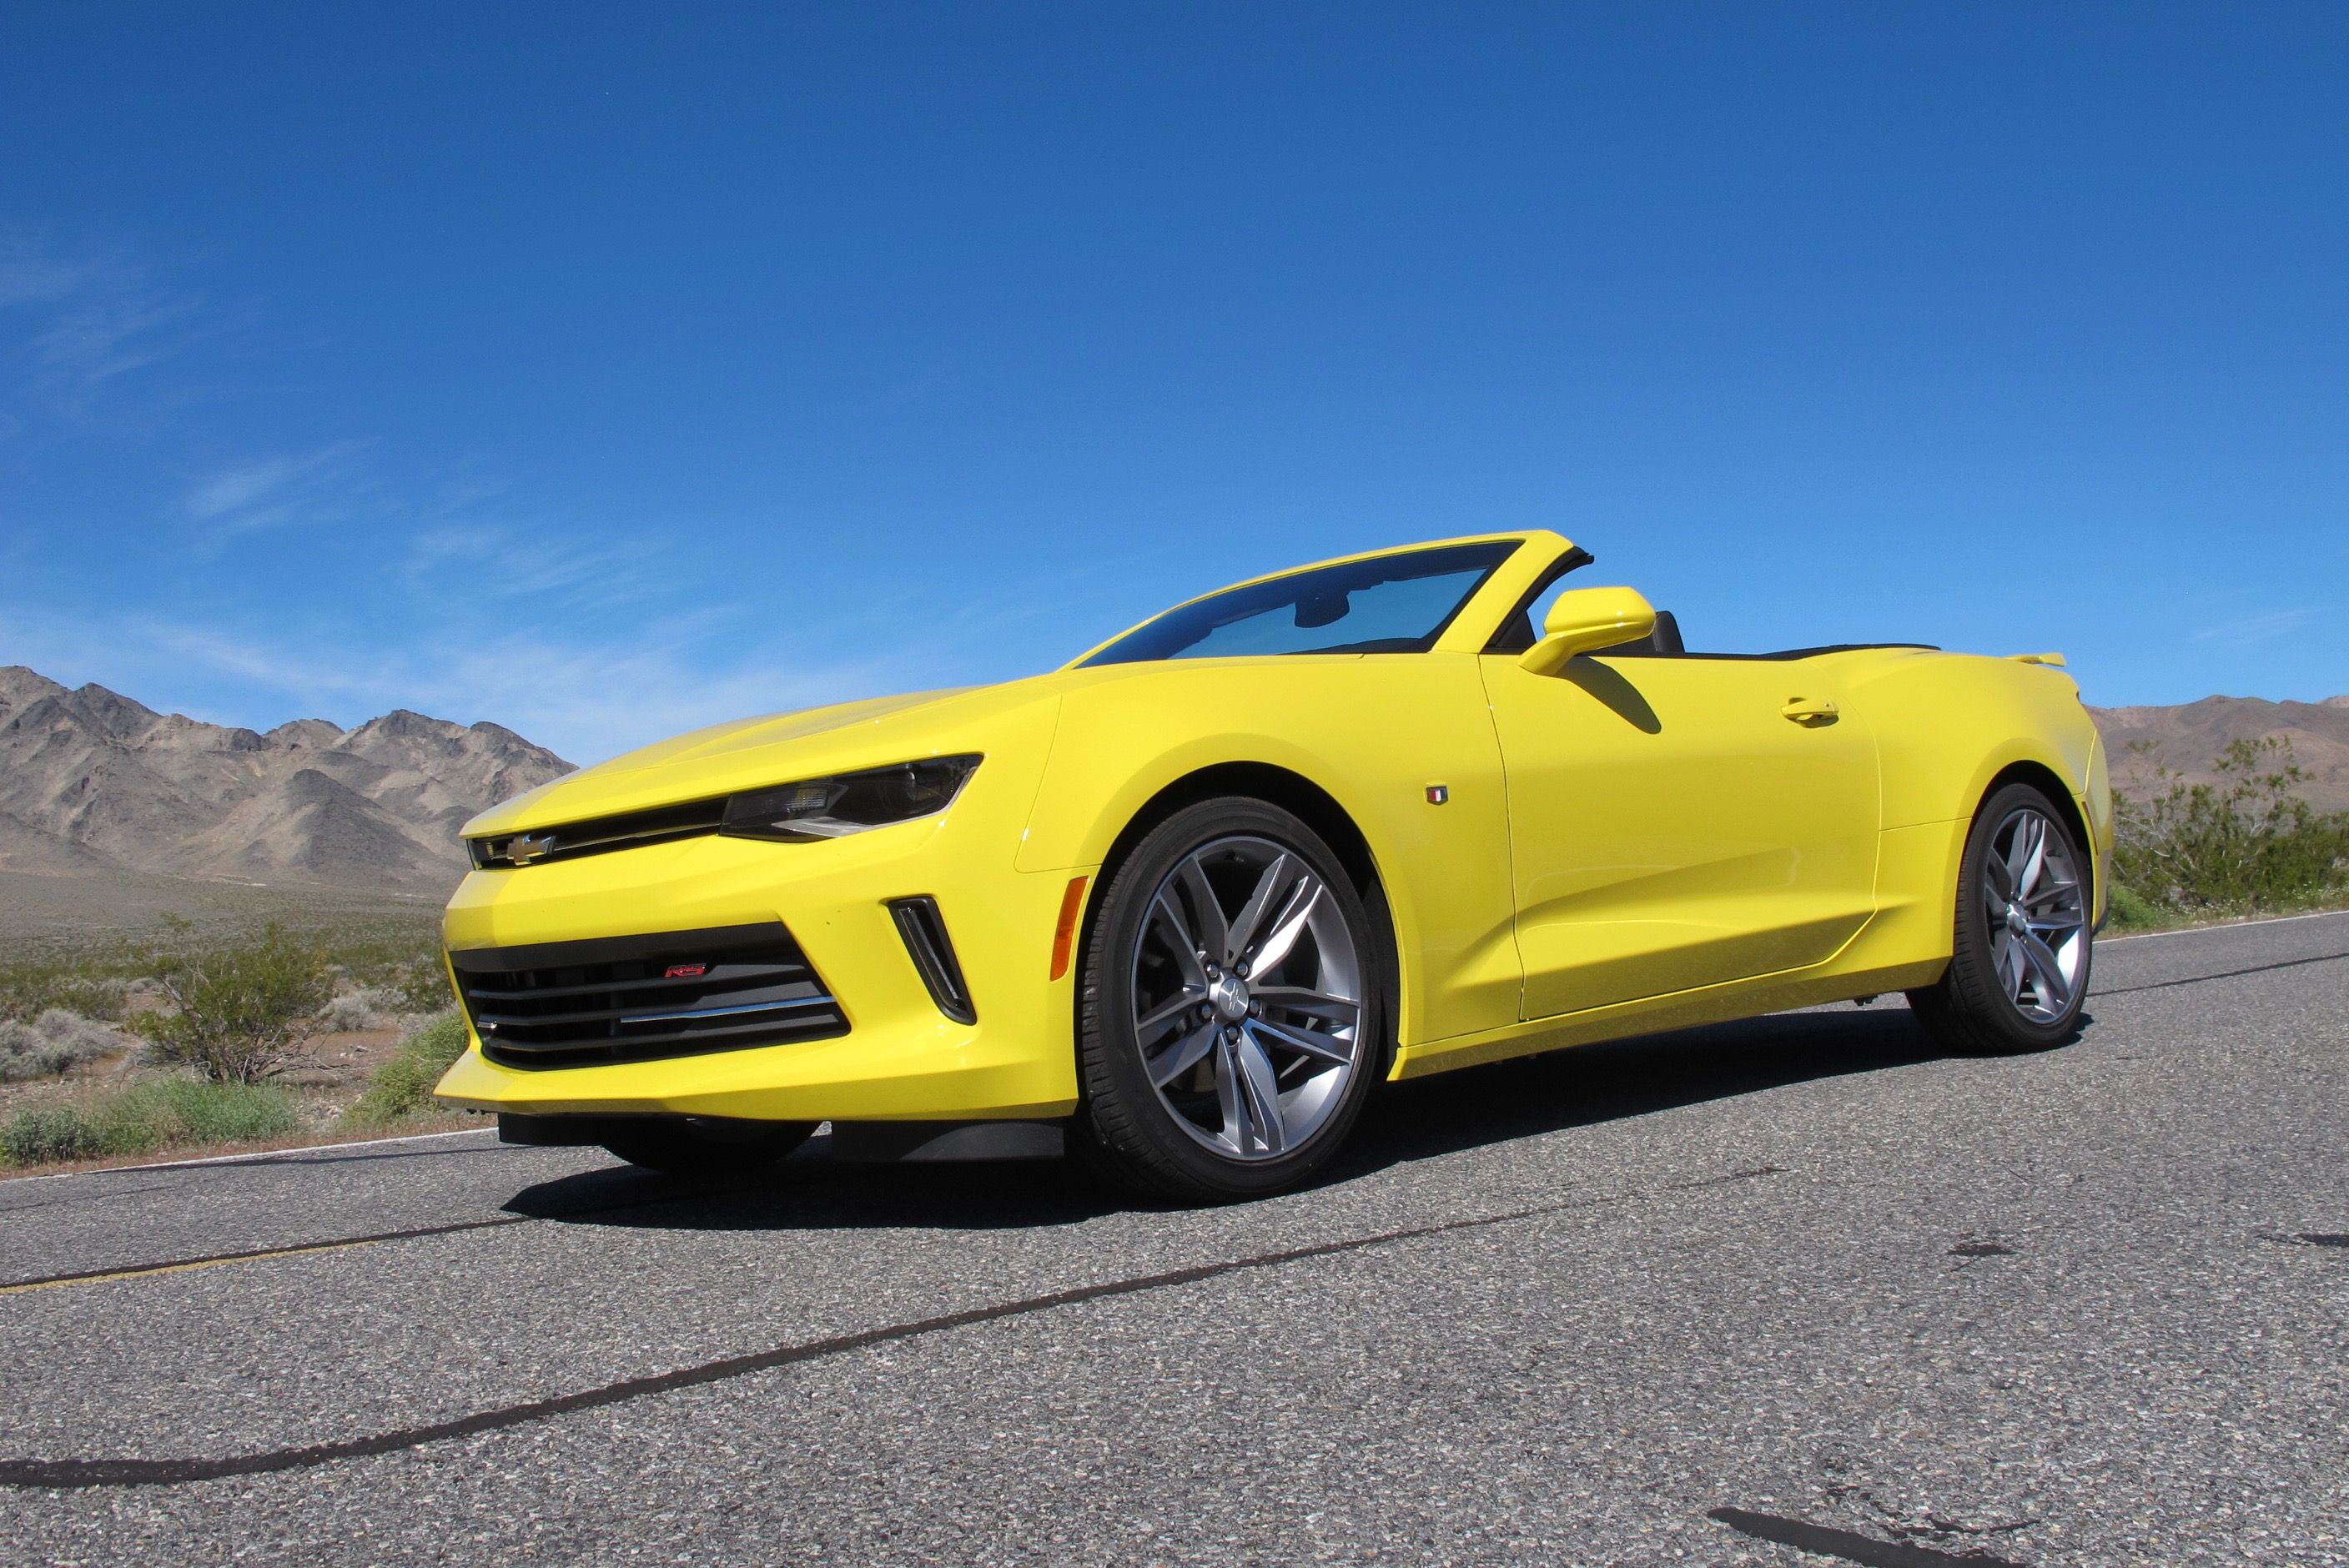 2016 Camaro convertible and 4 cylinder